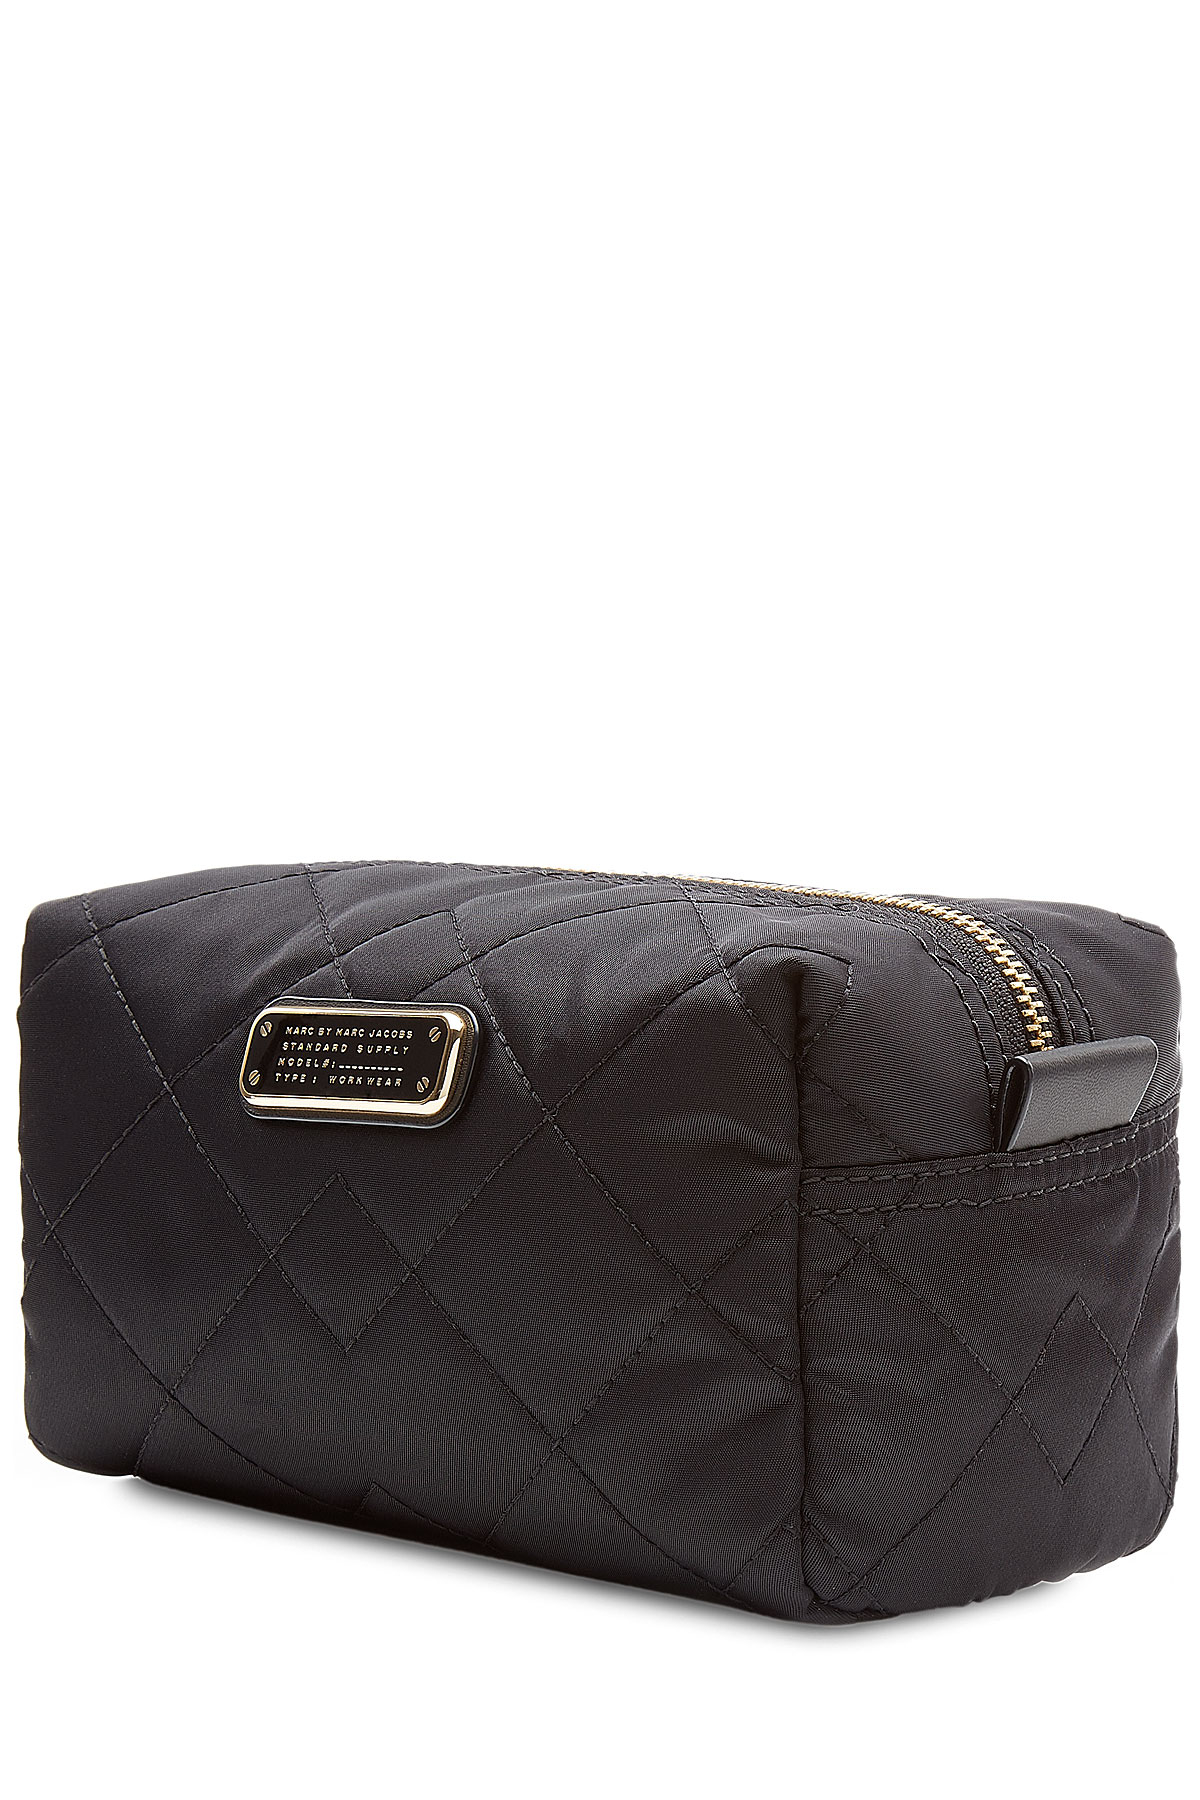 bdb9a19203f0 Lyst - Marc By Marc Jacobs Quilted Makeup Bag - Black in Black